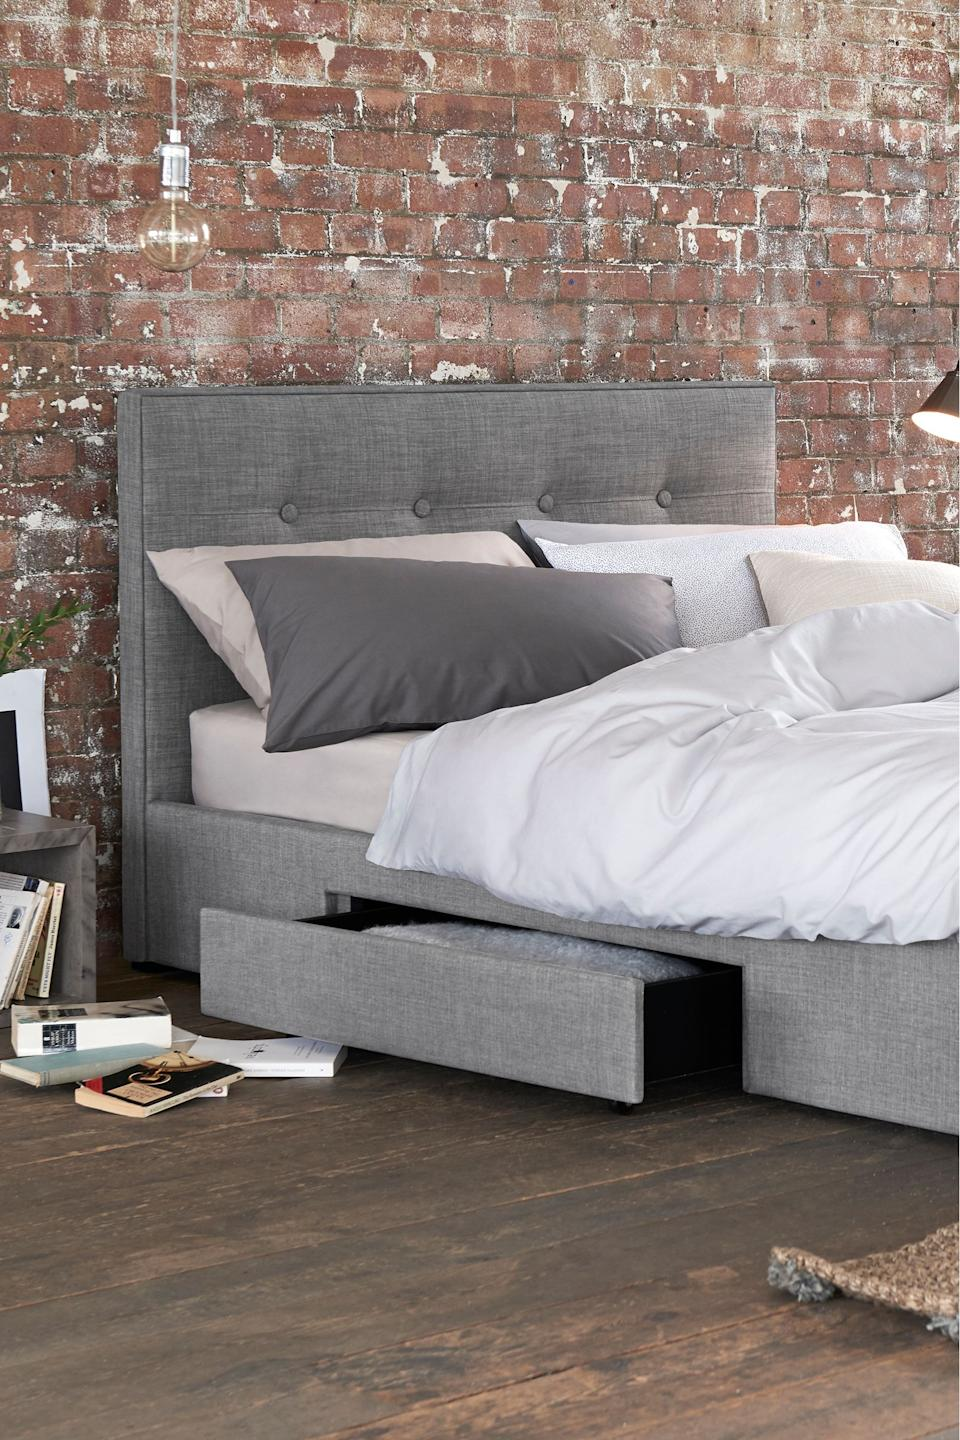 2 Drawer Bedstead Studio Collection By Next   £280 (Was £475). [Photo: Next]